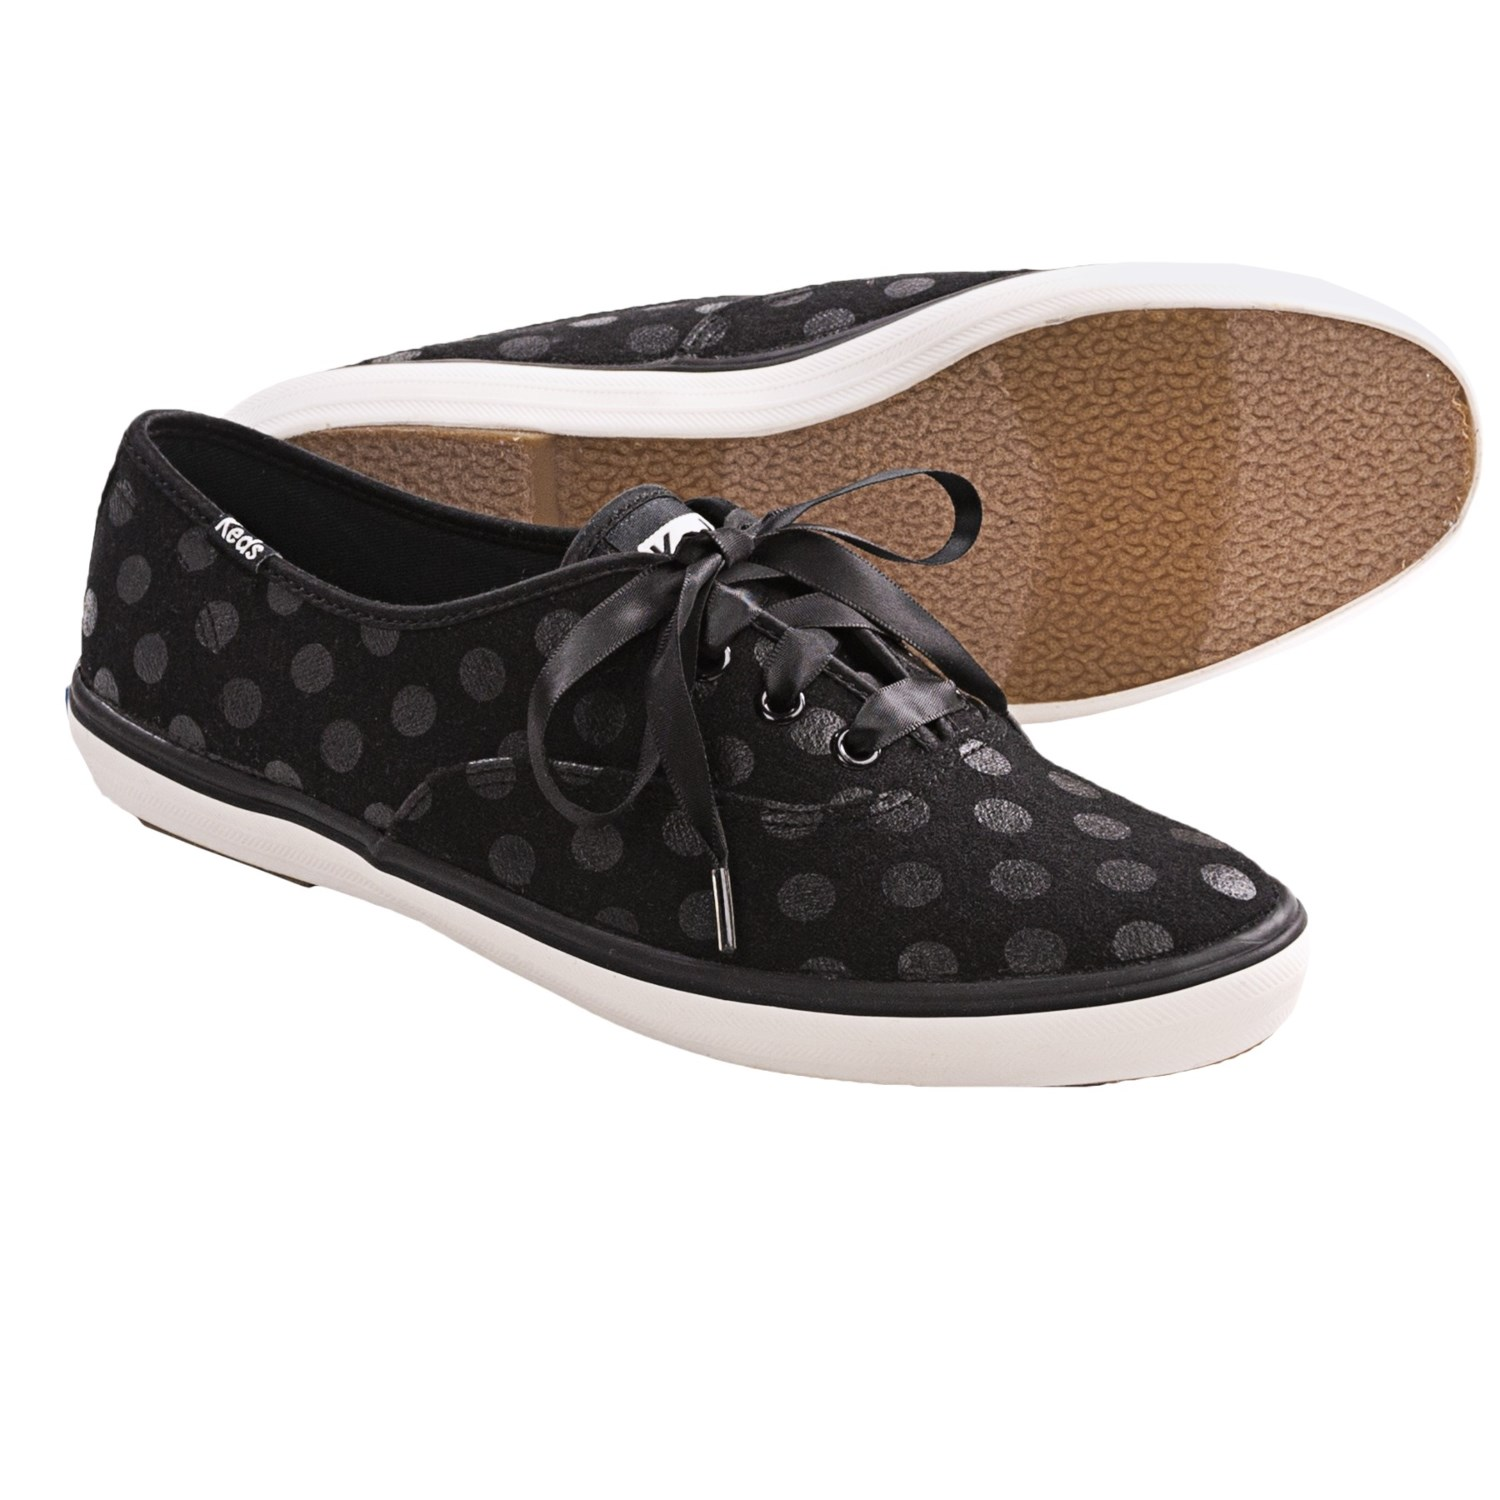 38% off keds Shoes - Keds Women's Cali Slip-On Sneakers & Athletic